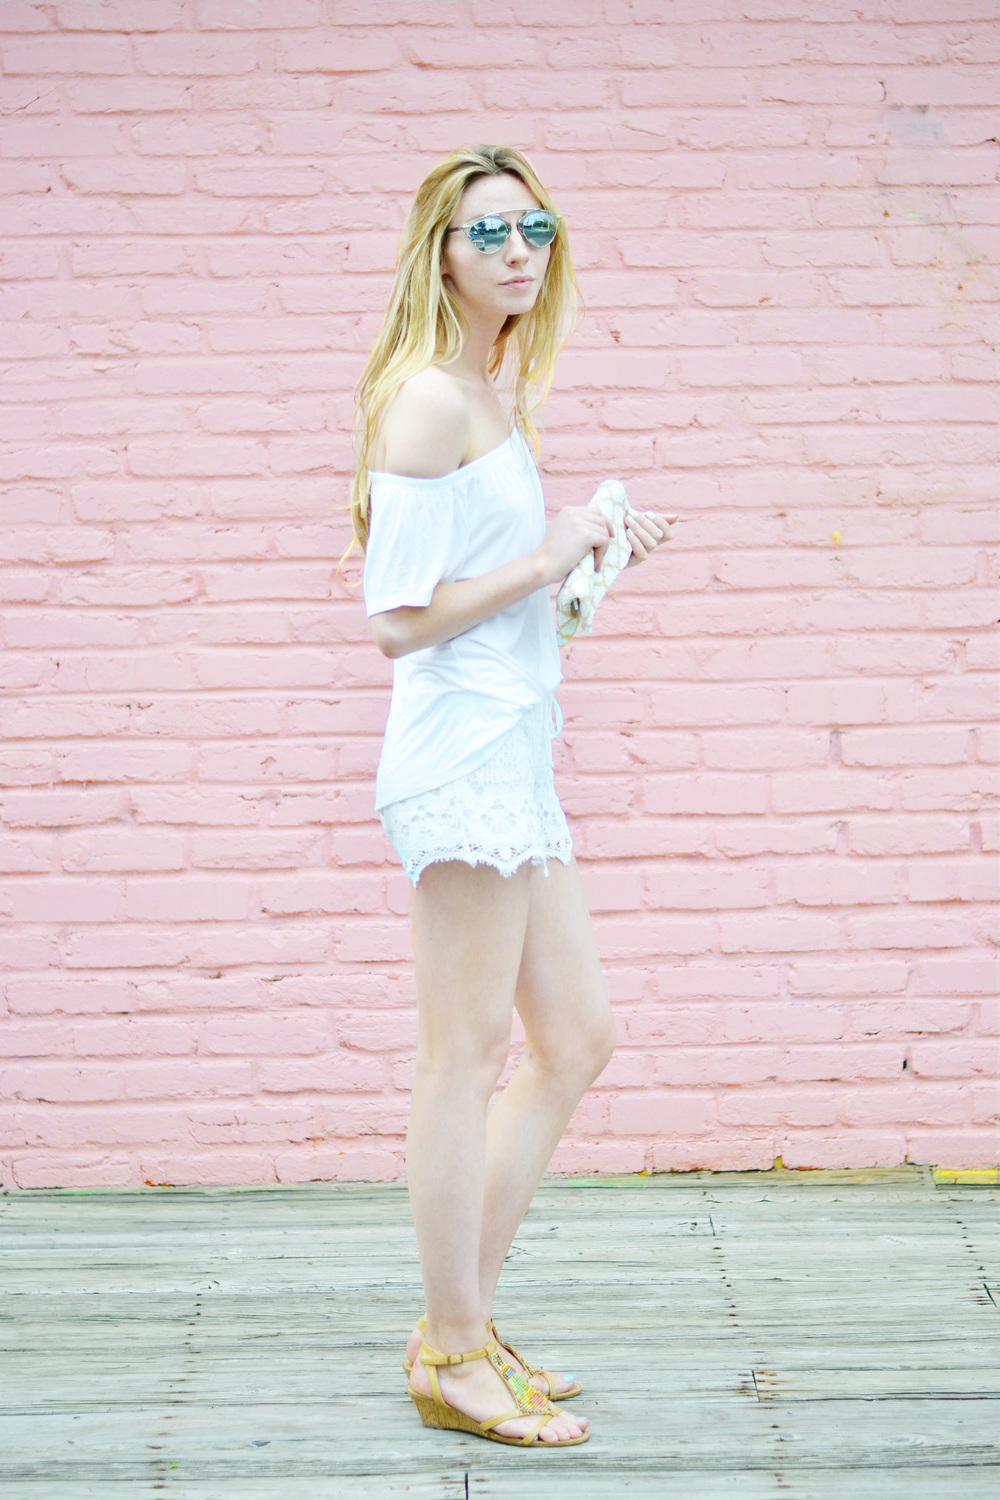 White Hot: Blogger Lace Shorts & Off The Shoulder (via Chic Now)